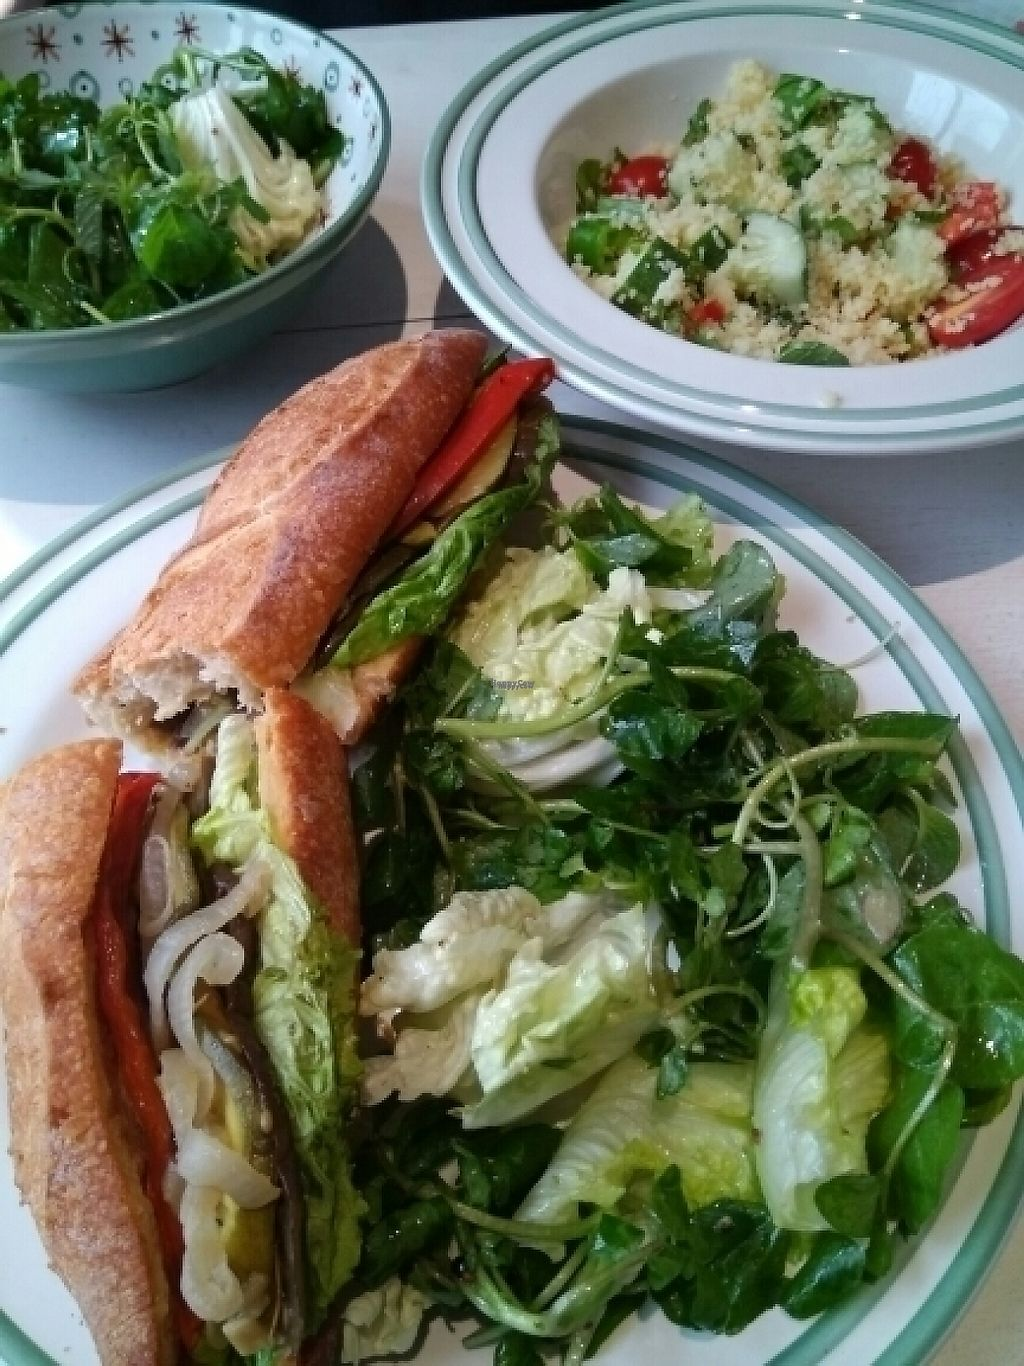 """Photo of Novelty Cafe  by <a href=""""/members/profile/happytina"""">happytina</a> <br/>vegan baguette and cous cous salad <br/> December 4, 2016  - <a href='/contact/abuse/image/73061/197146'>Report</a>"""